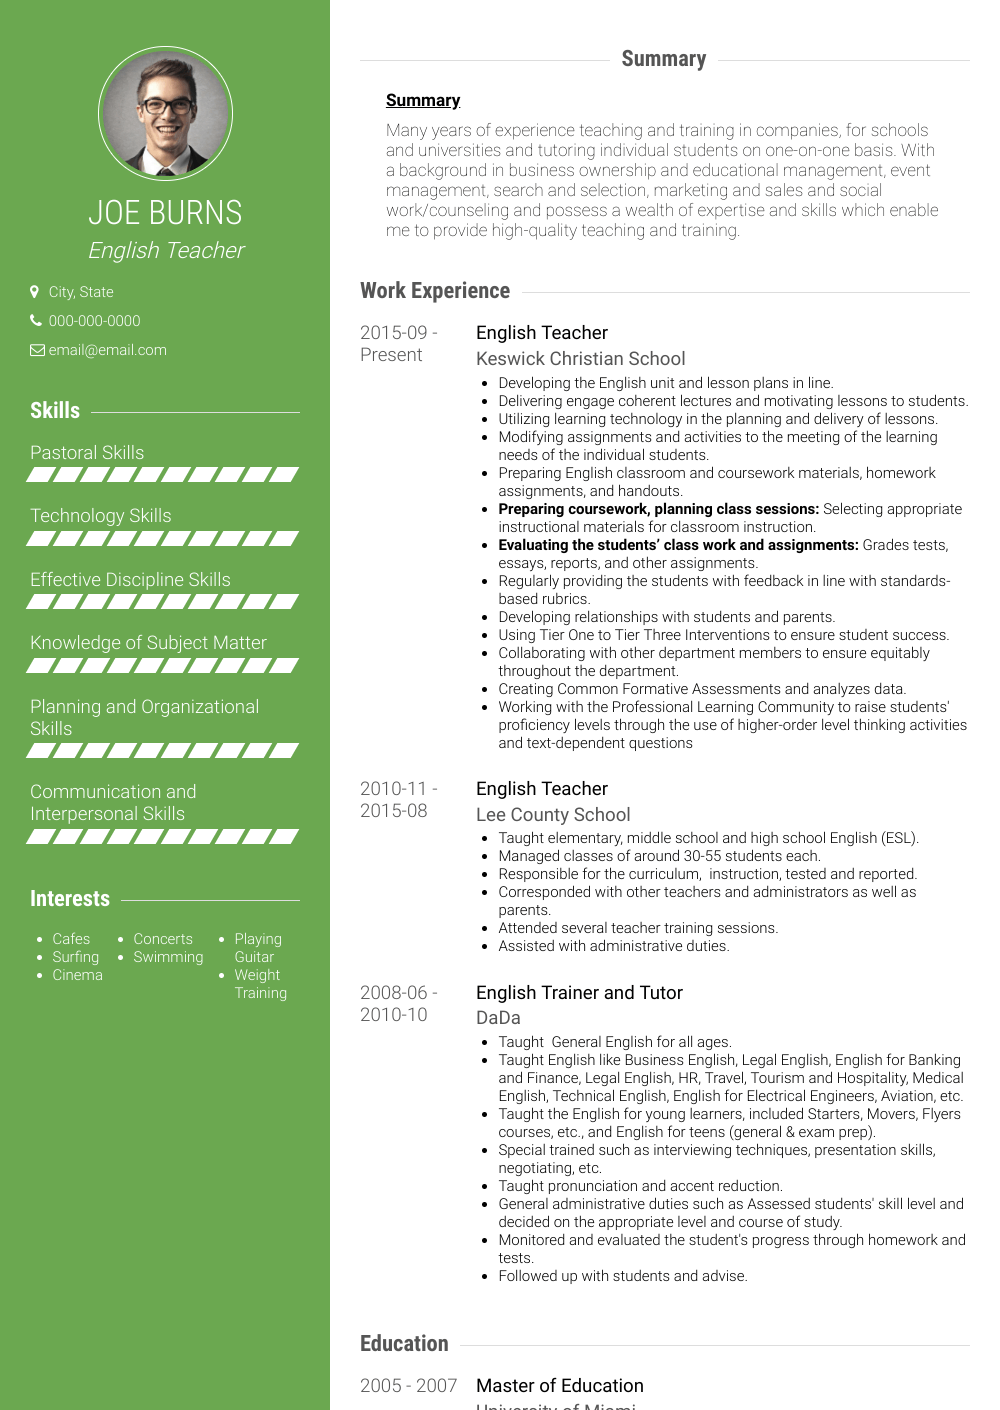 Esl Teacher - Resume Samples and Templates | VisualCV